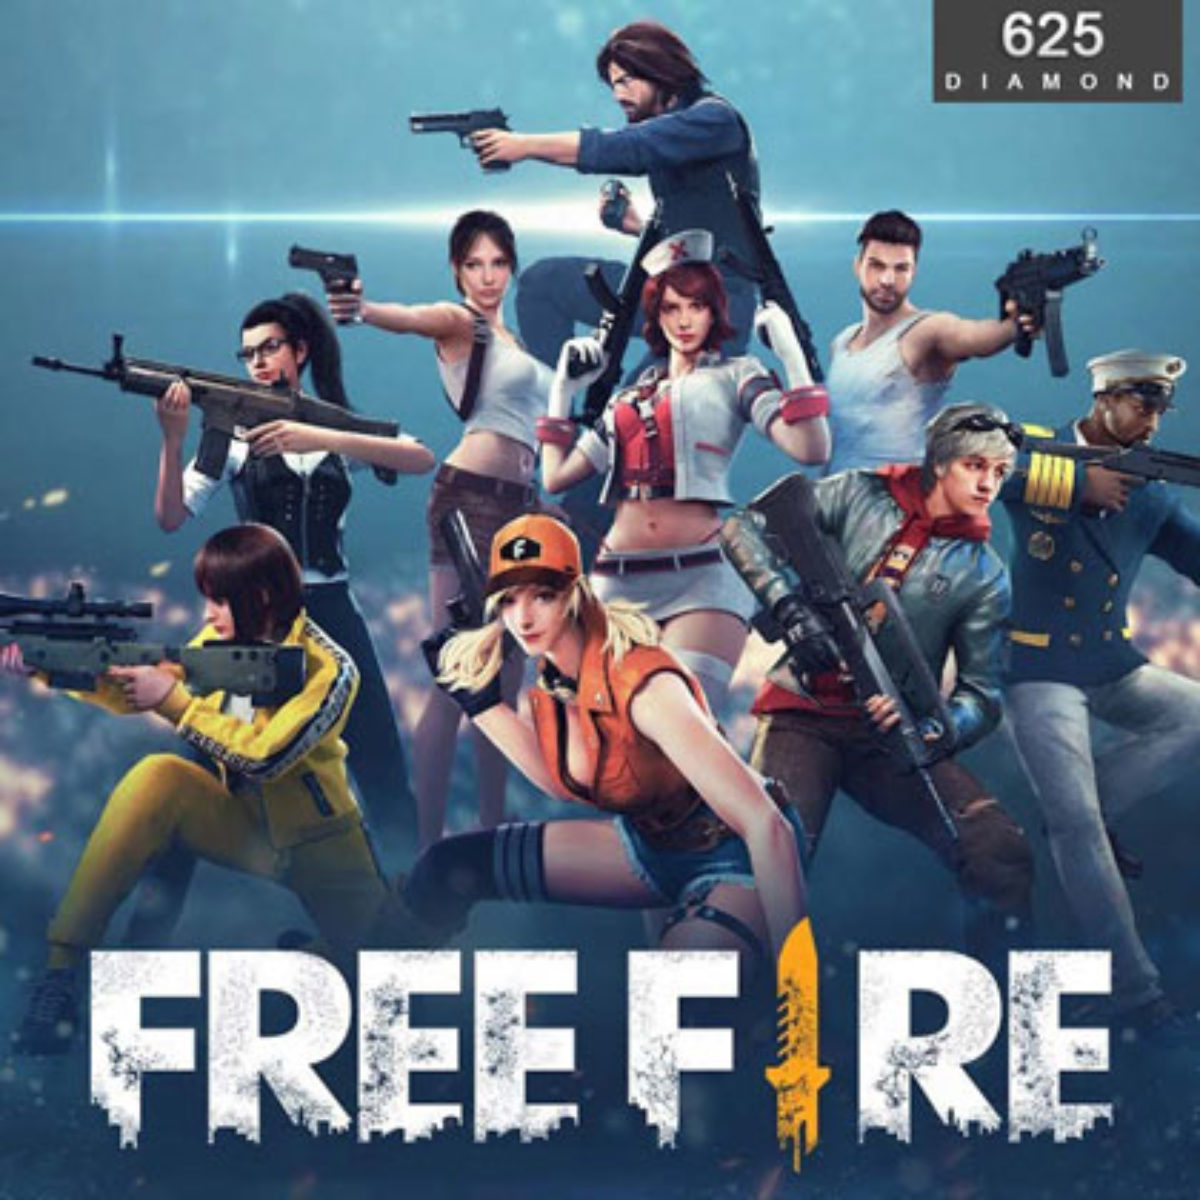 Free Fire 625 Diamonds Direct Top Up The Gamers Mall International